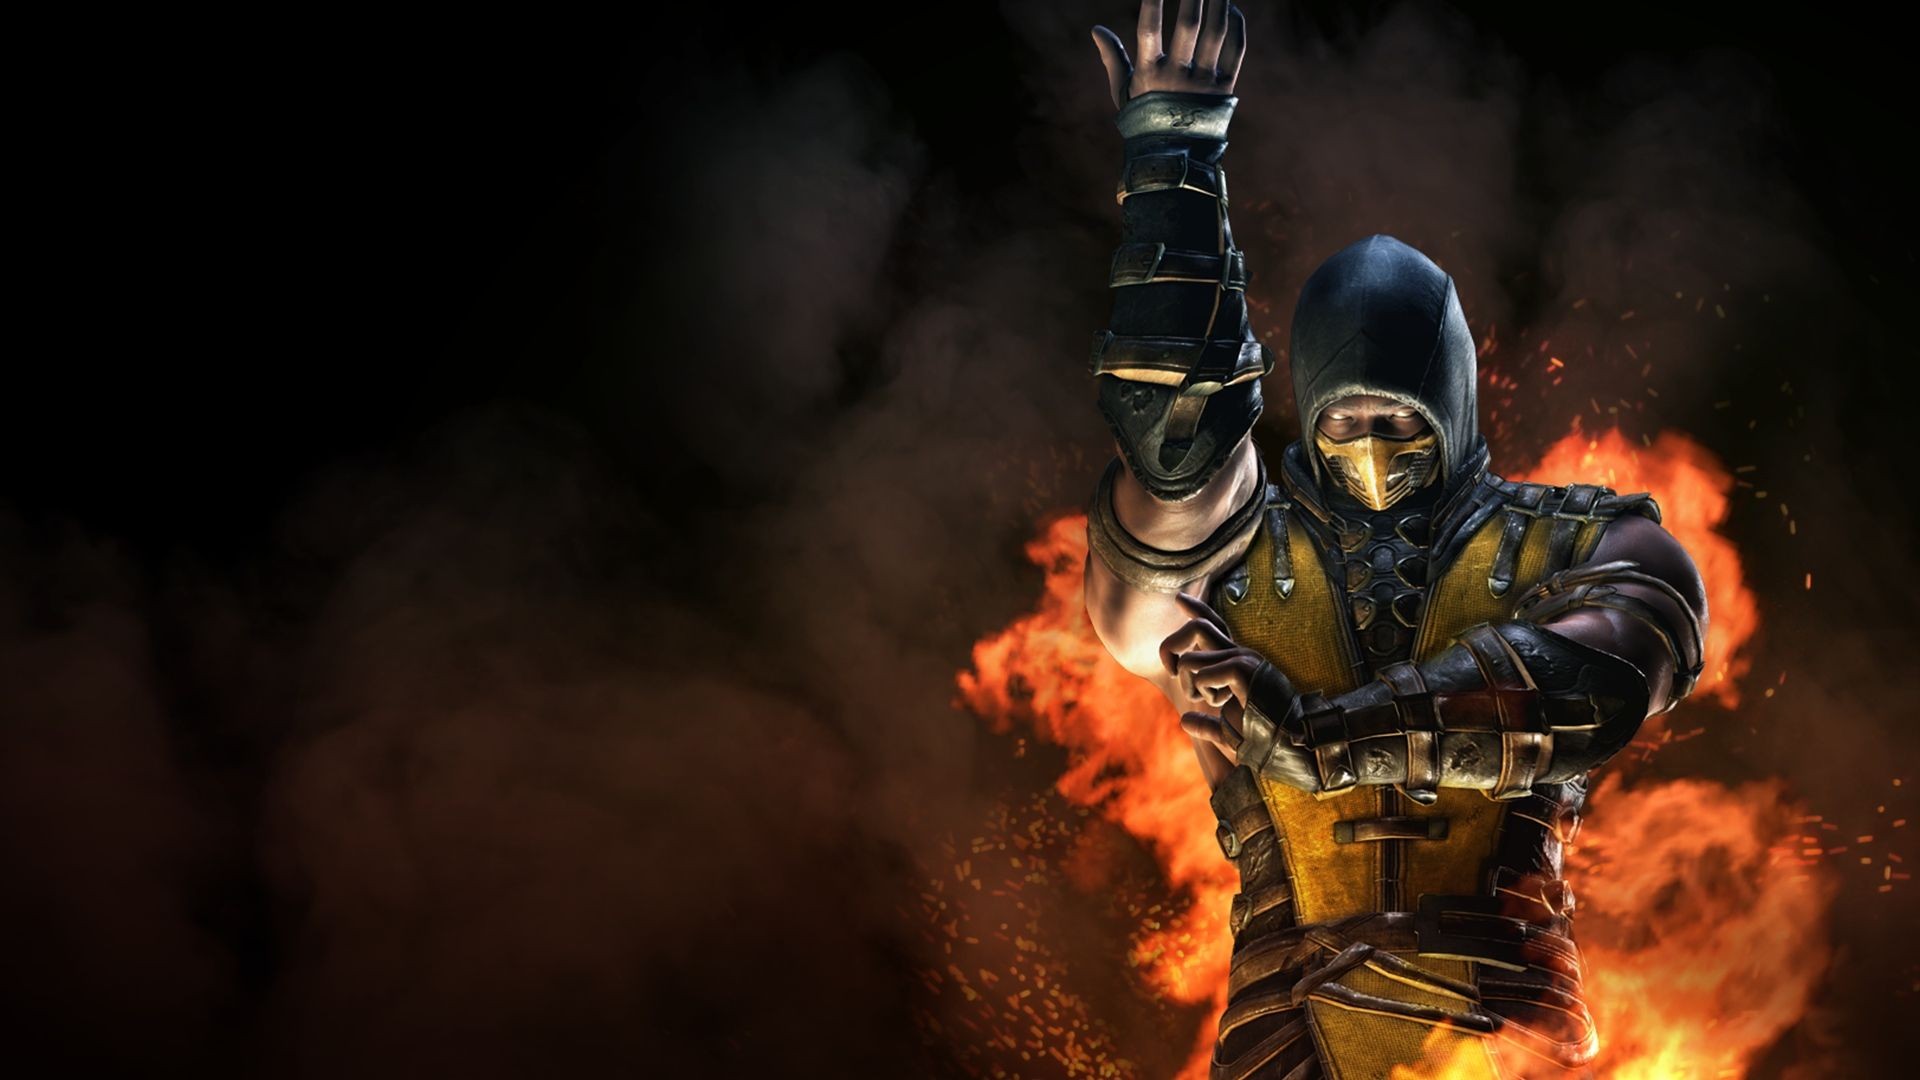 Mortal Kombat Xl Wallpaper: Mortal Kombat X Wallpaper Images #DjE